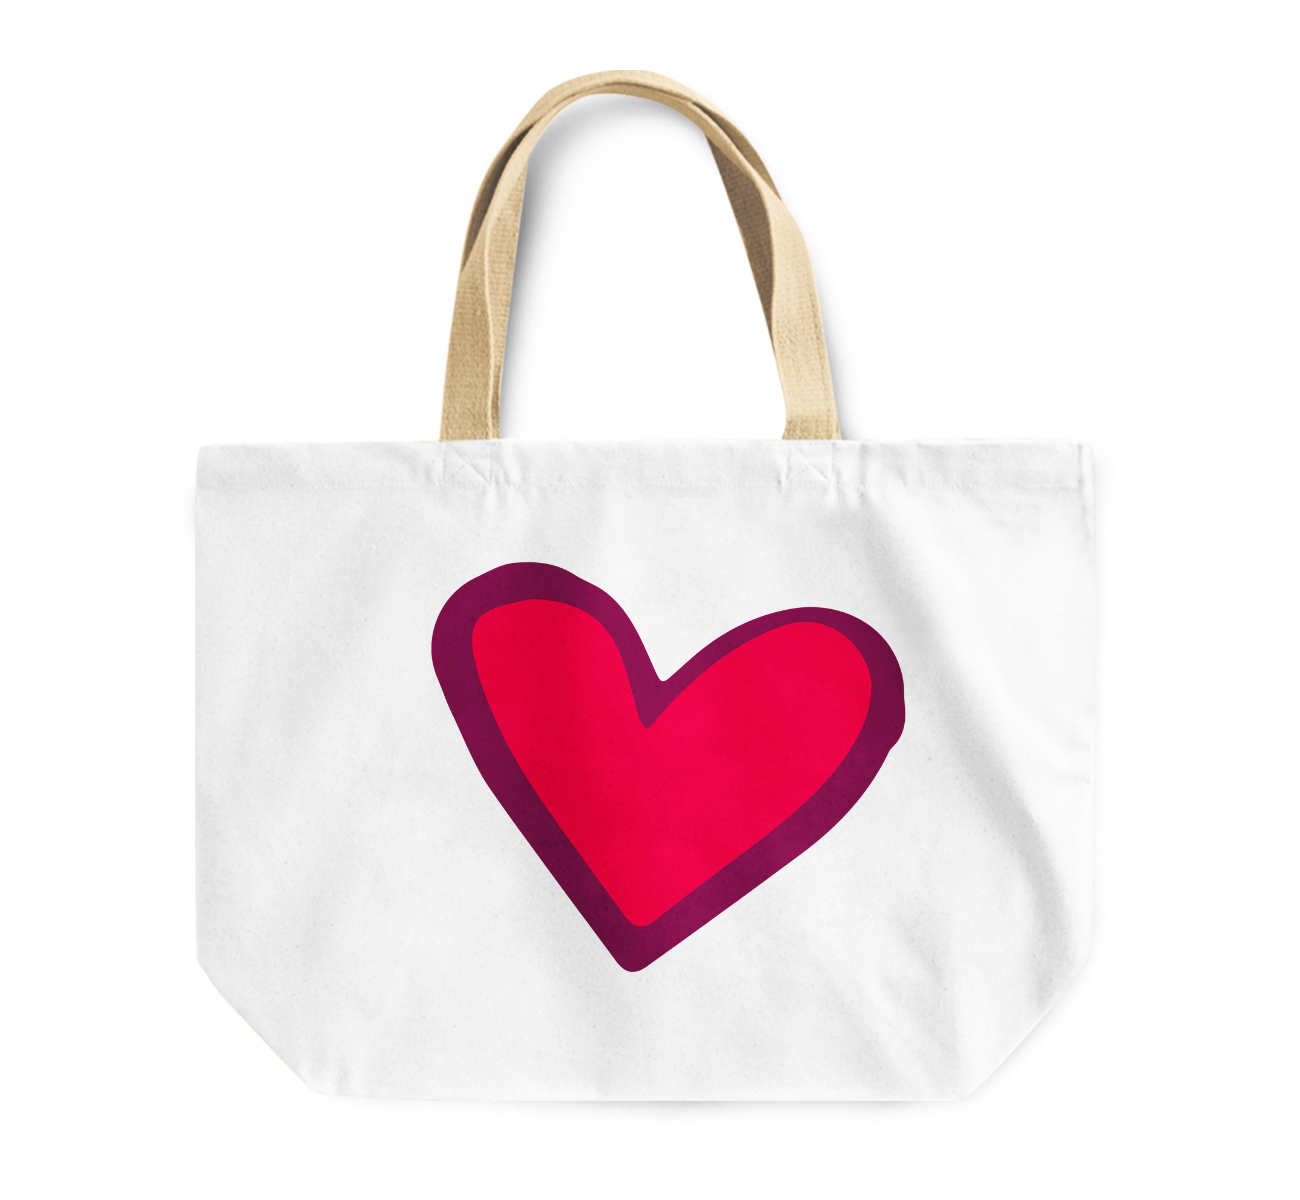 Tote Bag Heart Love Couples Reusable Shopping Bag By Loud Universe